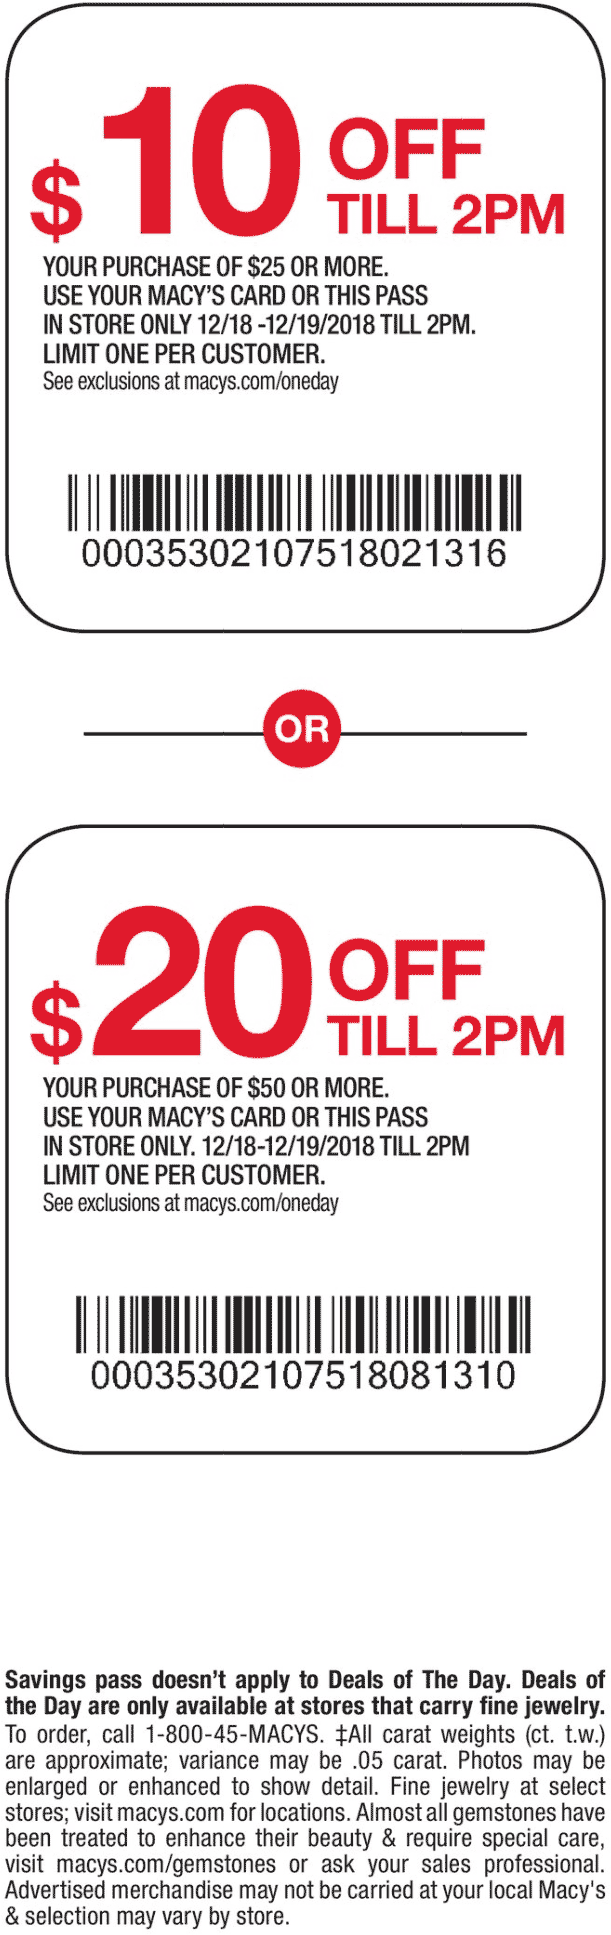 Macys Coupon November 2019 $10 off $25 & more til 2p at Macys